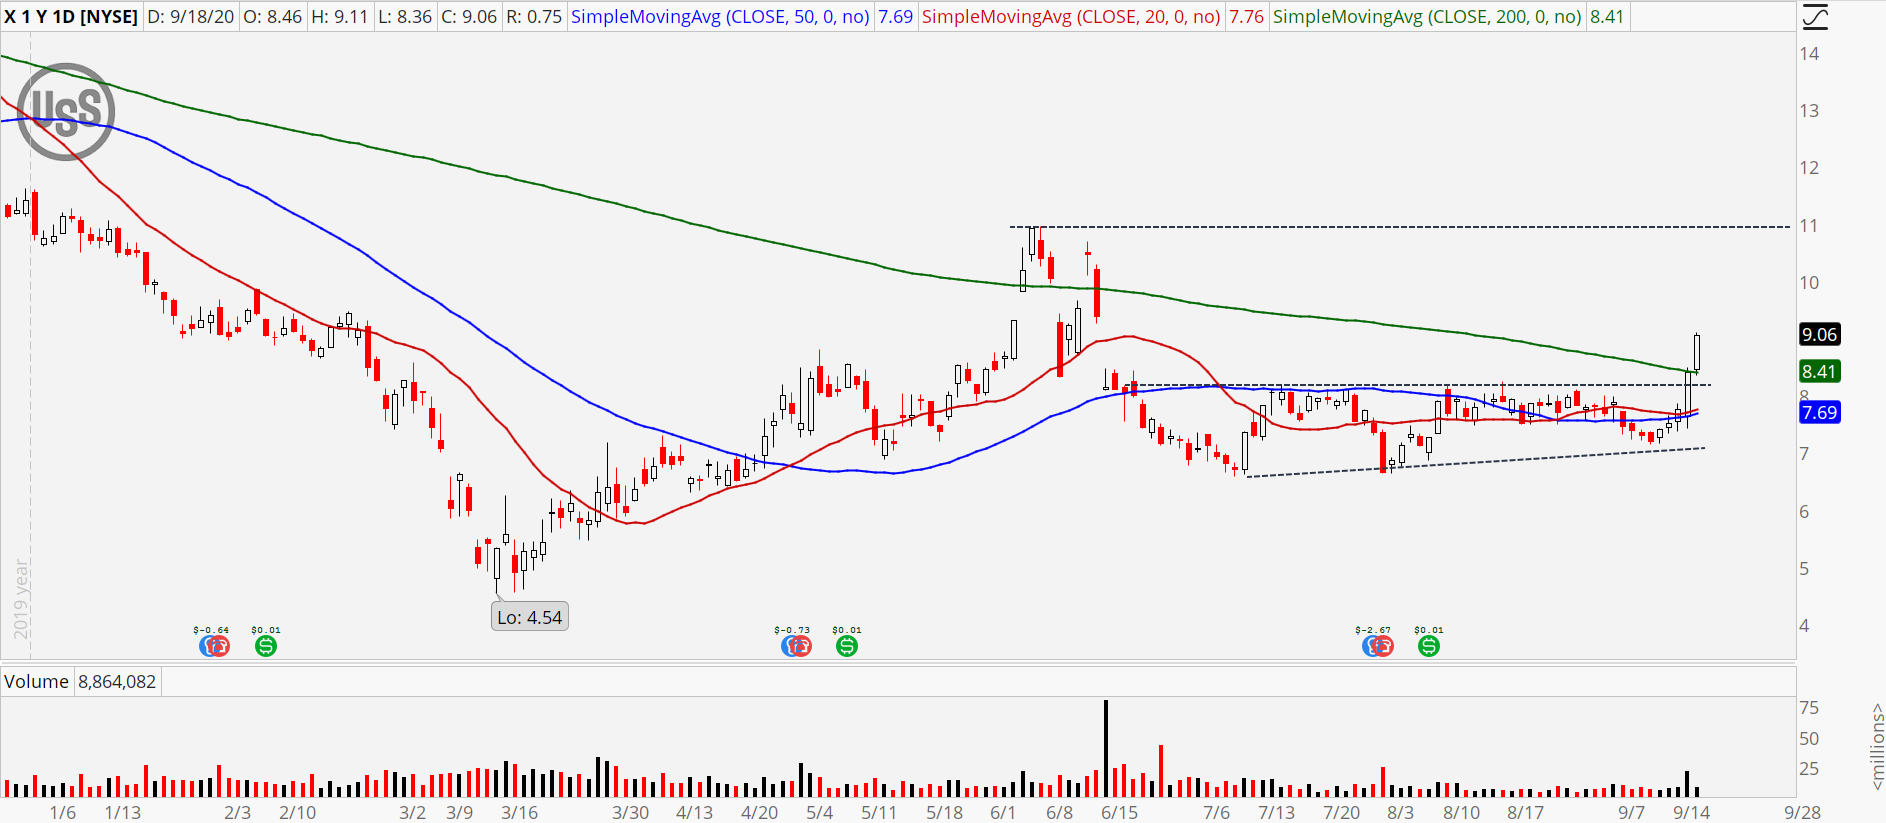 United States Steel (X) chart showing big breakout